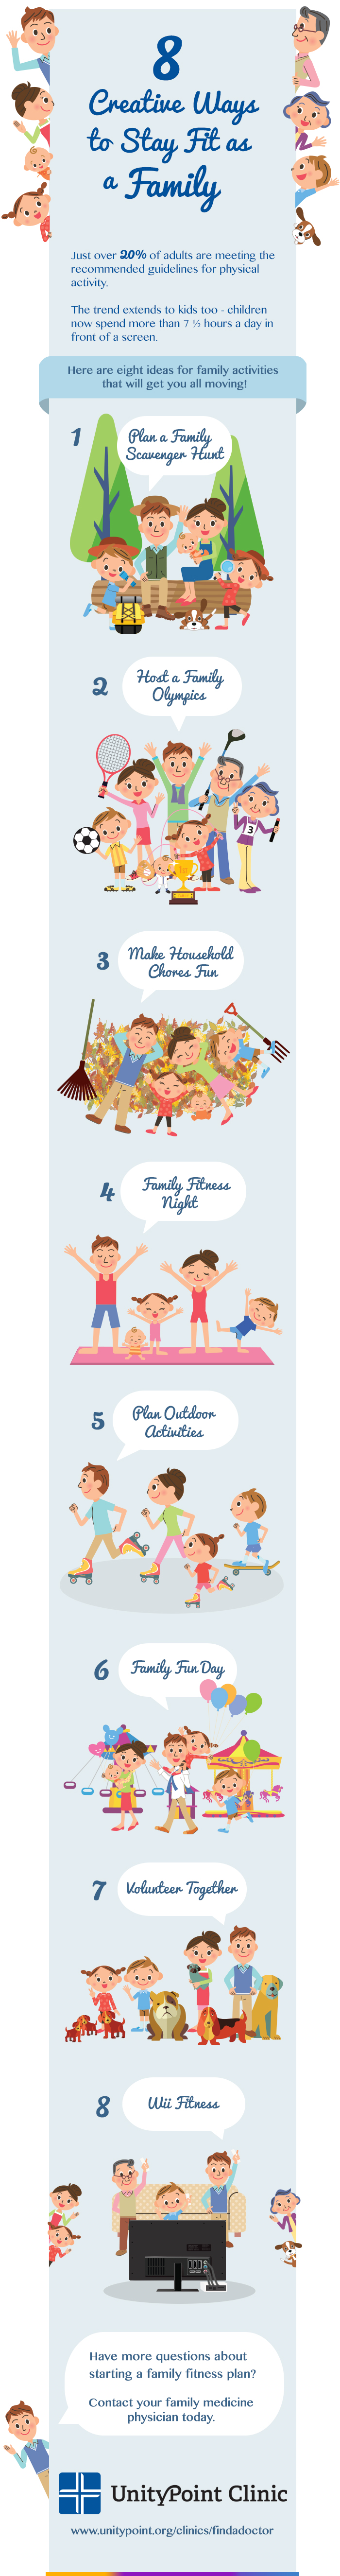 Family Fitness Infographic